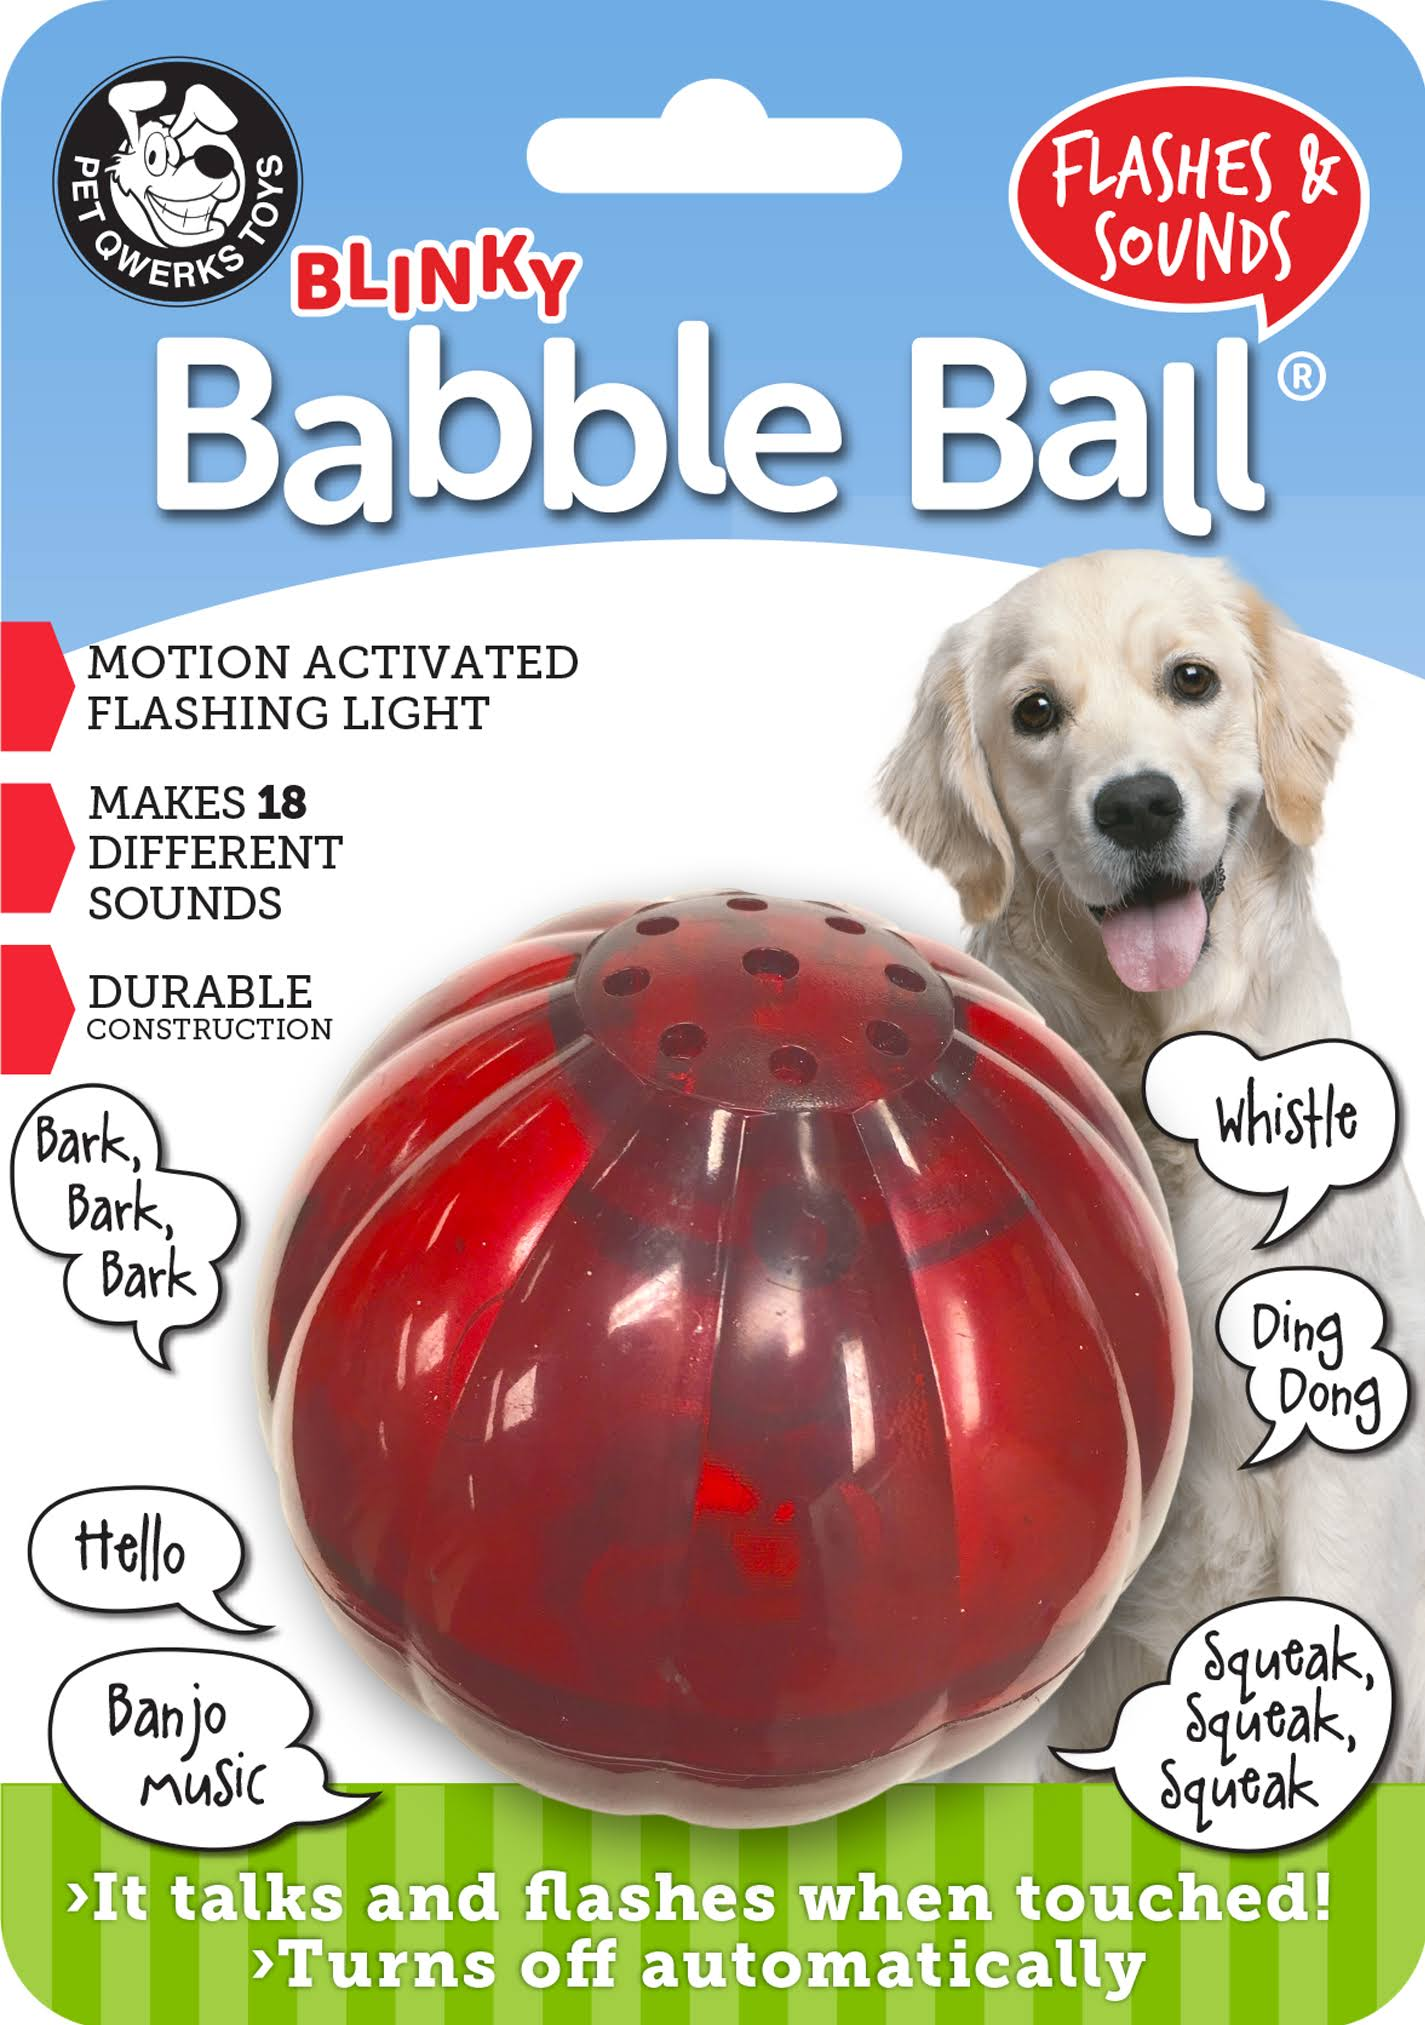 Blinky Babble Ball Interactive Dog Toy